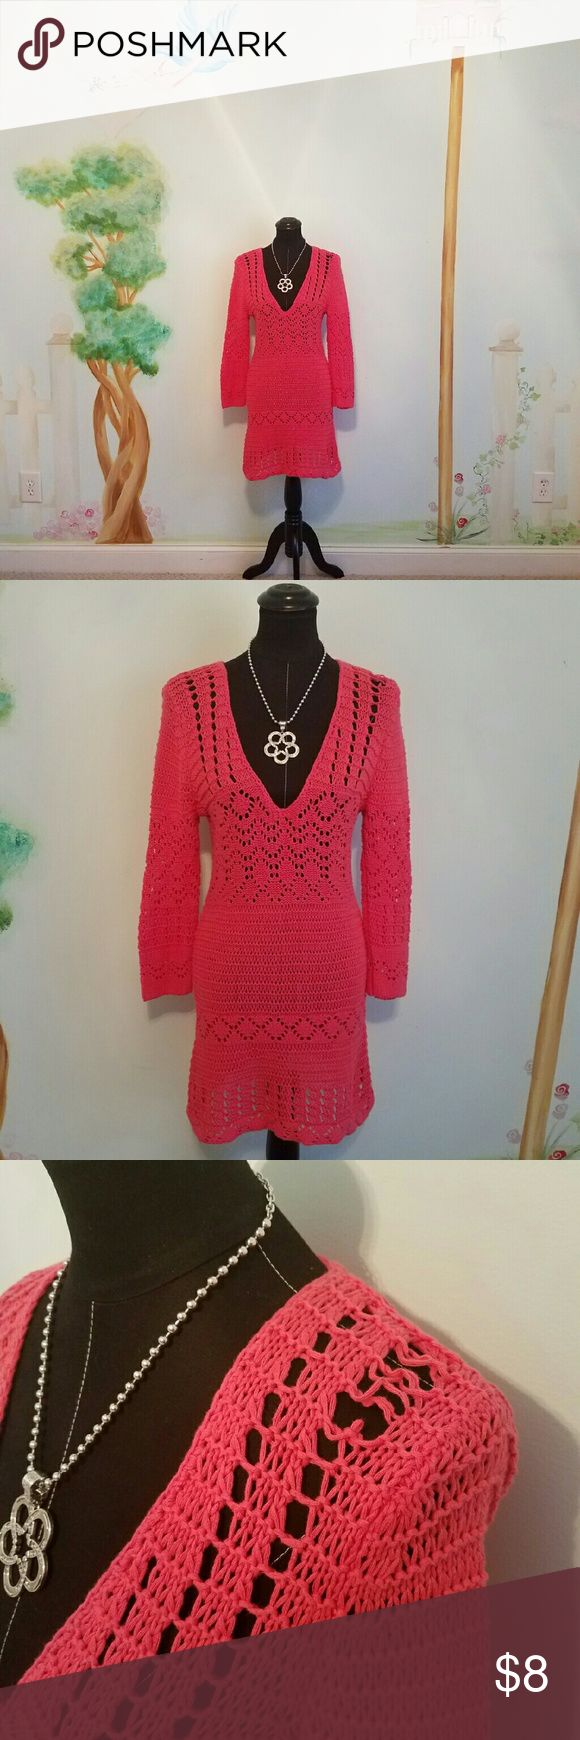 """Moda International Beautiful Coral Sweater Dress Beautiful coral sweater dress. It unraveled a bit on the shoulder, but it's still so pretty and like new other than that. Slips on over your head. 100% Cotton. Machine washable.  Bust 16"""" Waist 14"""" Hips 16"""" Length 33"""". Please let me know if you have any questions. Thank you for looking! Xoxoxoxo Moda International Dresses"""